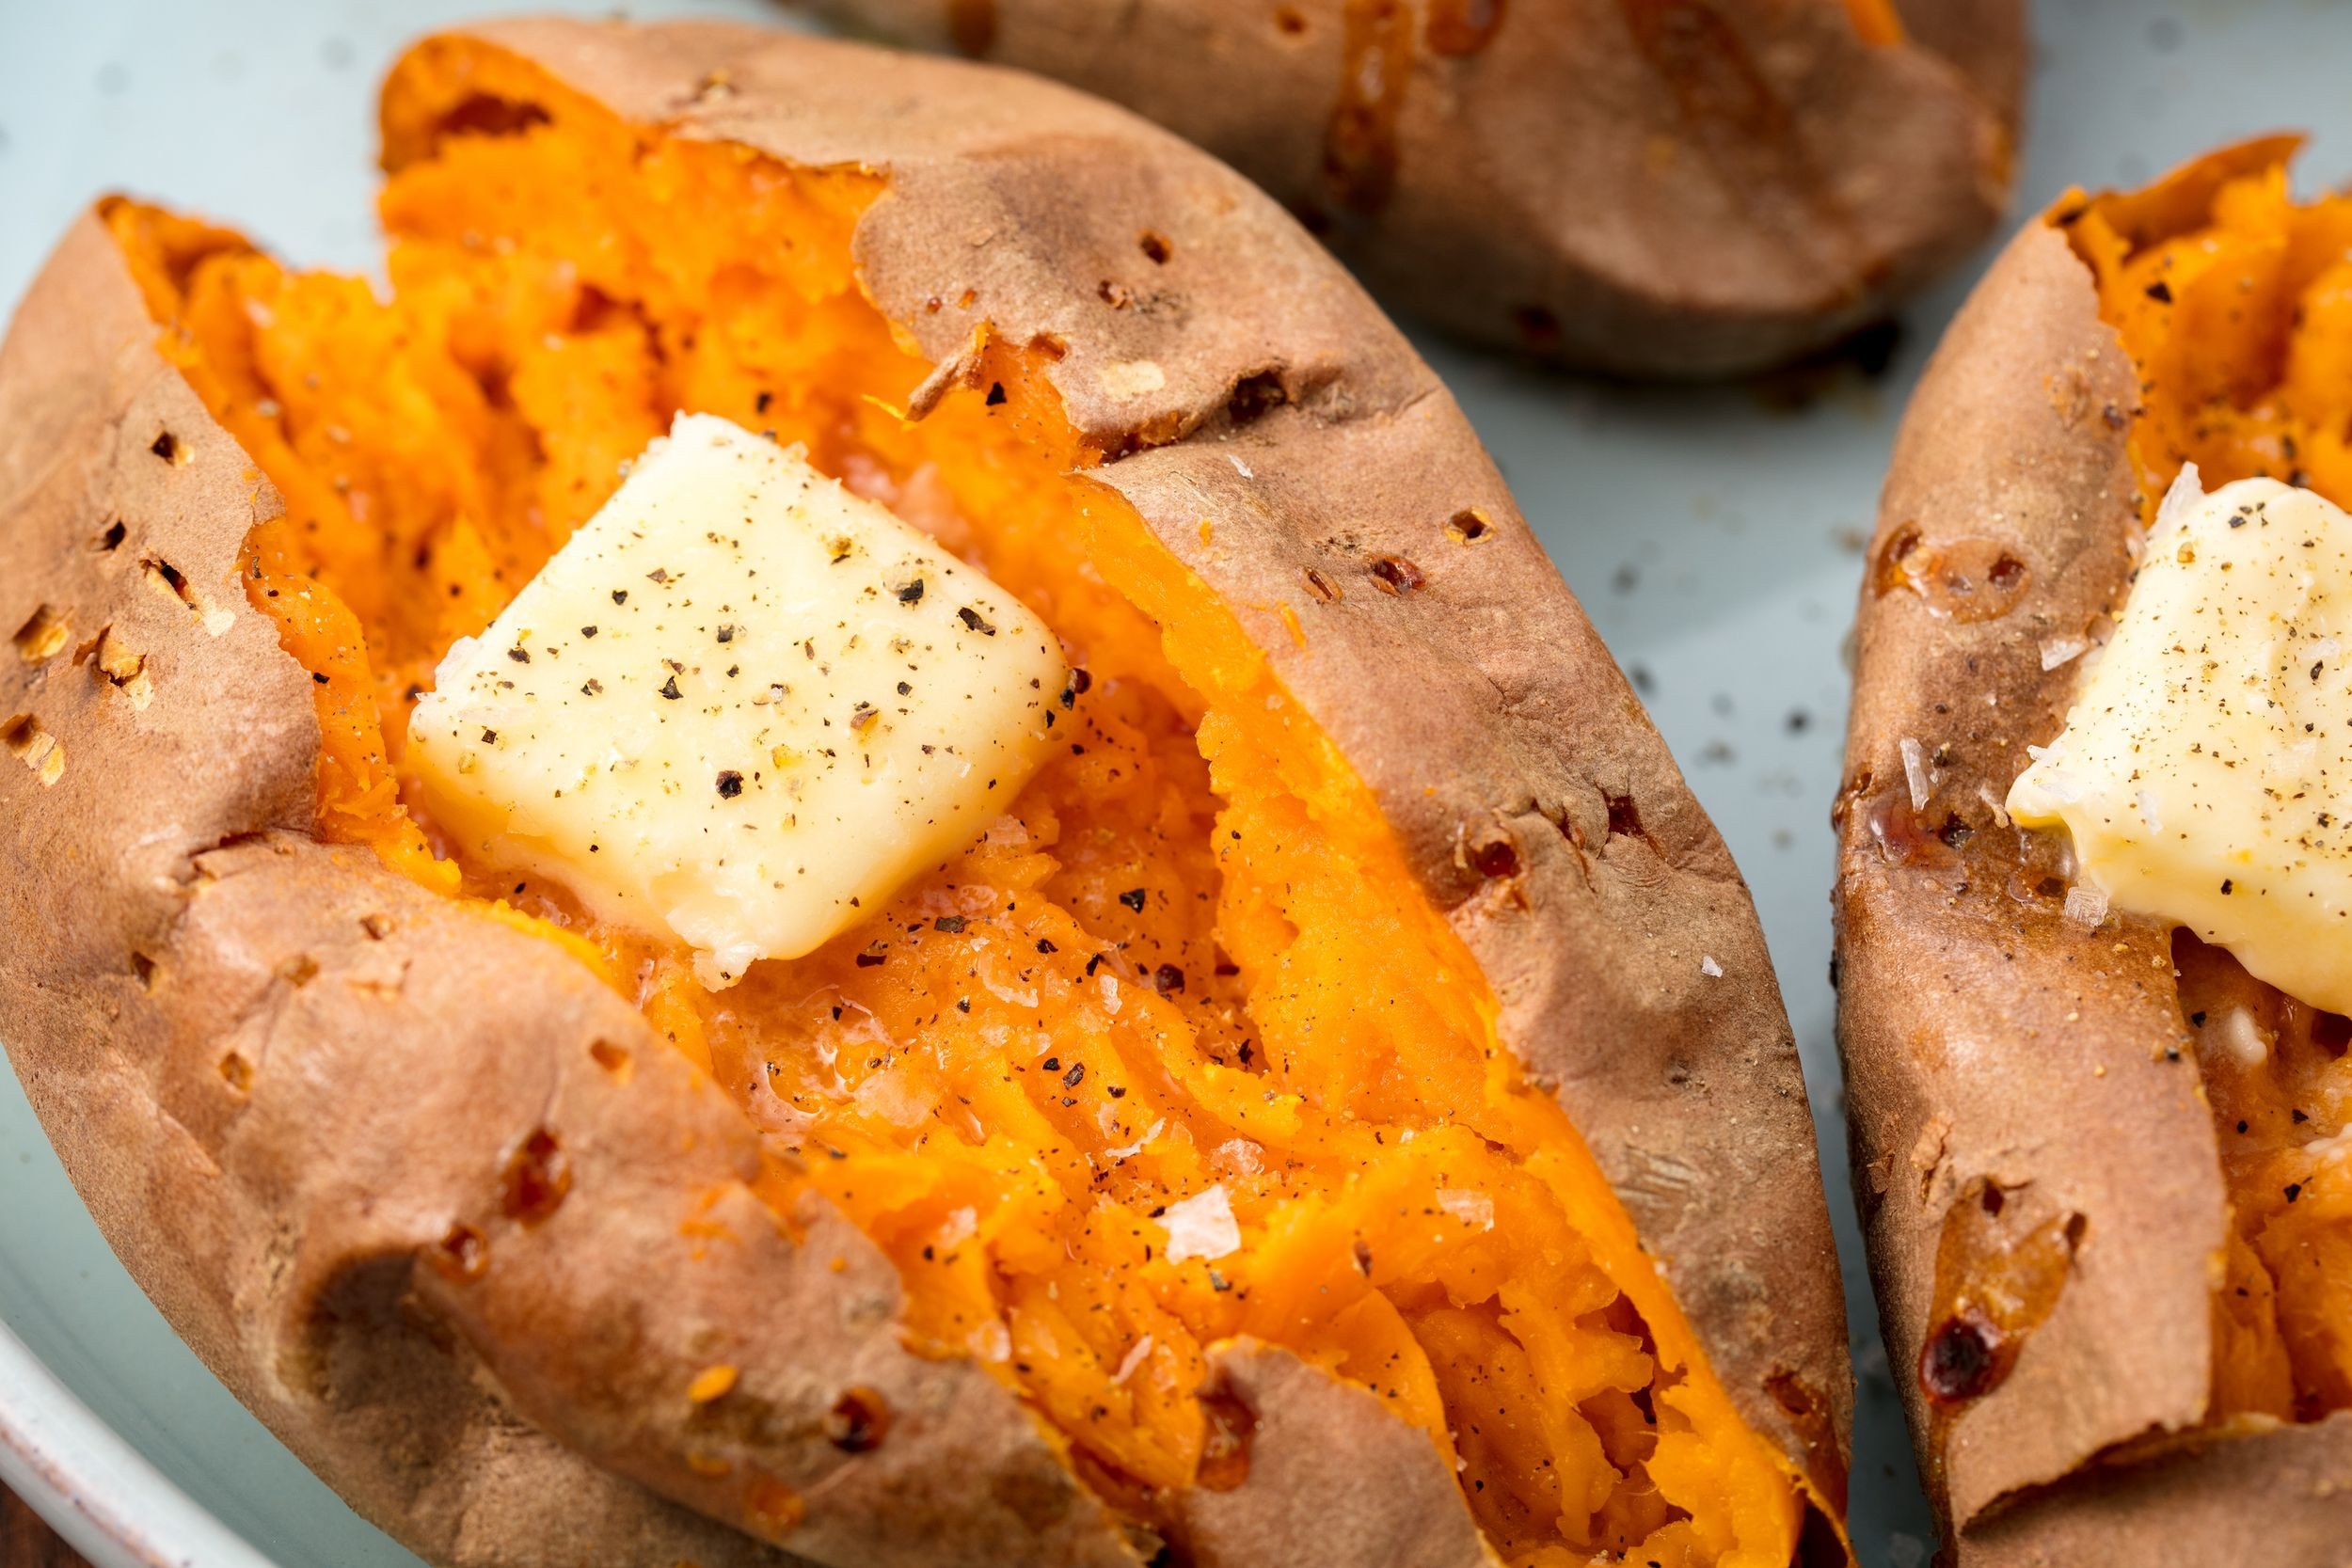 Best Baked Sweet Potato Recipe How To Bake Whole Sweet Potatoes In Oven